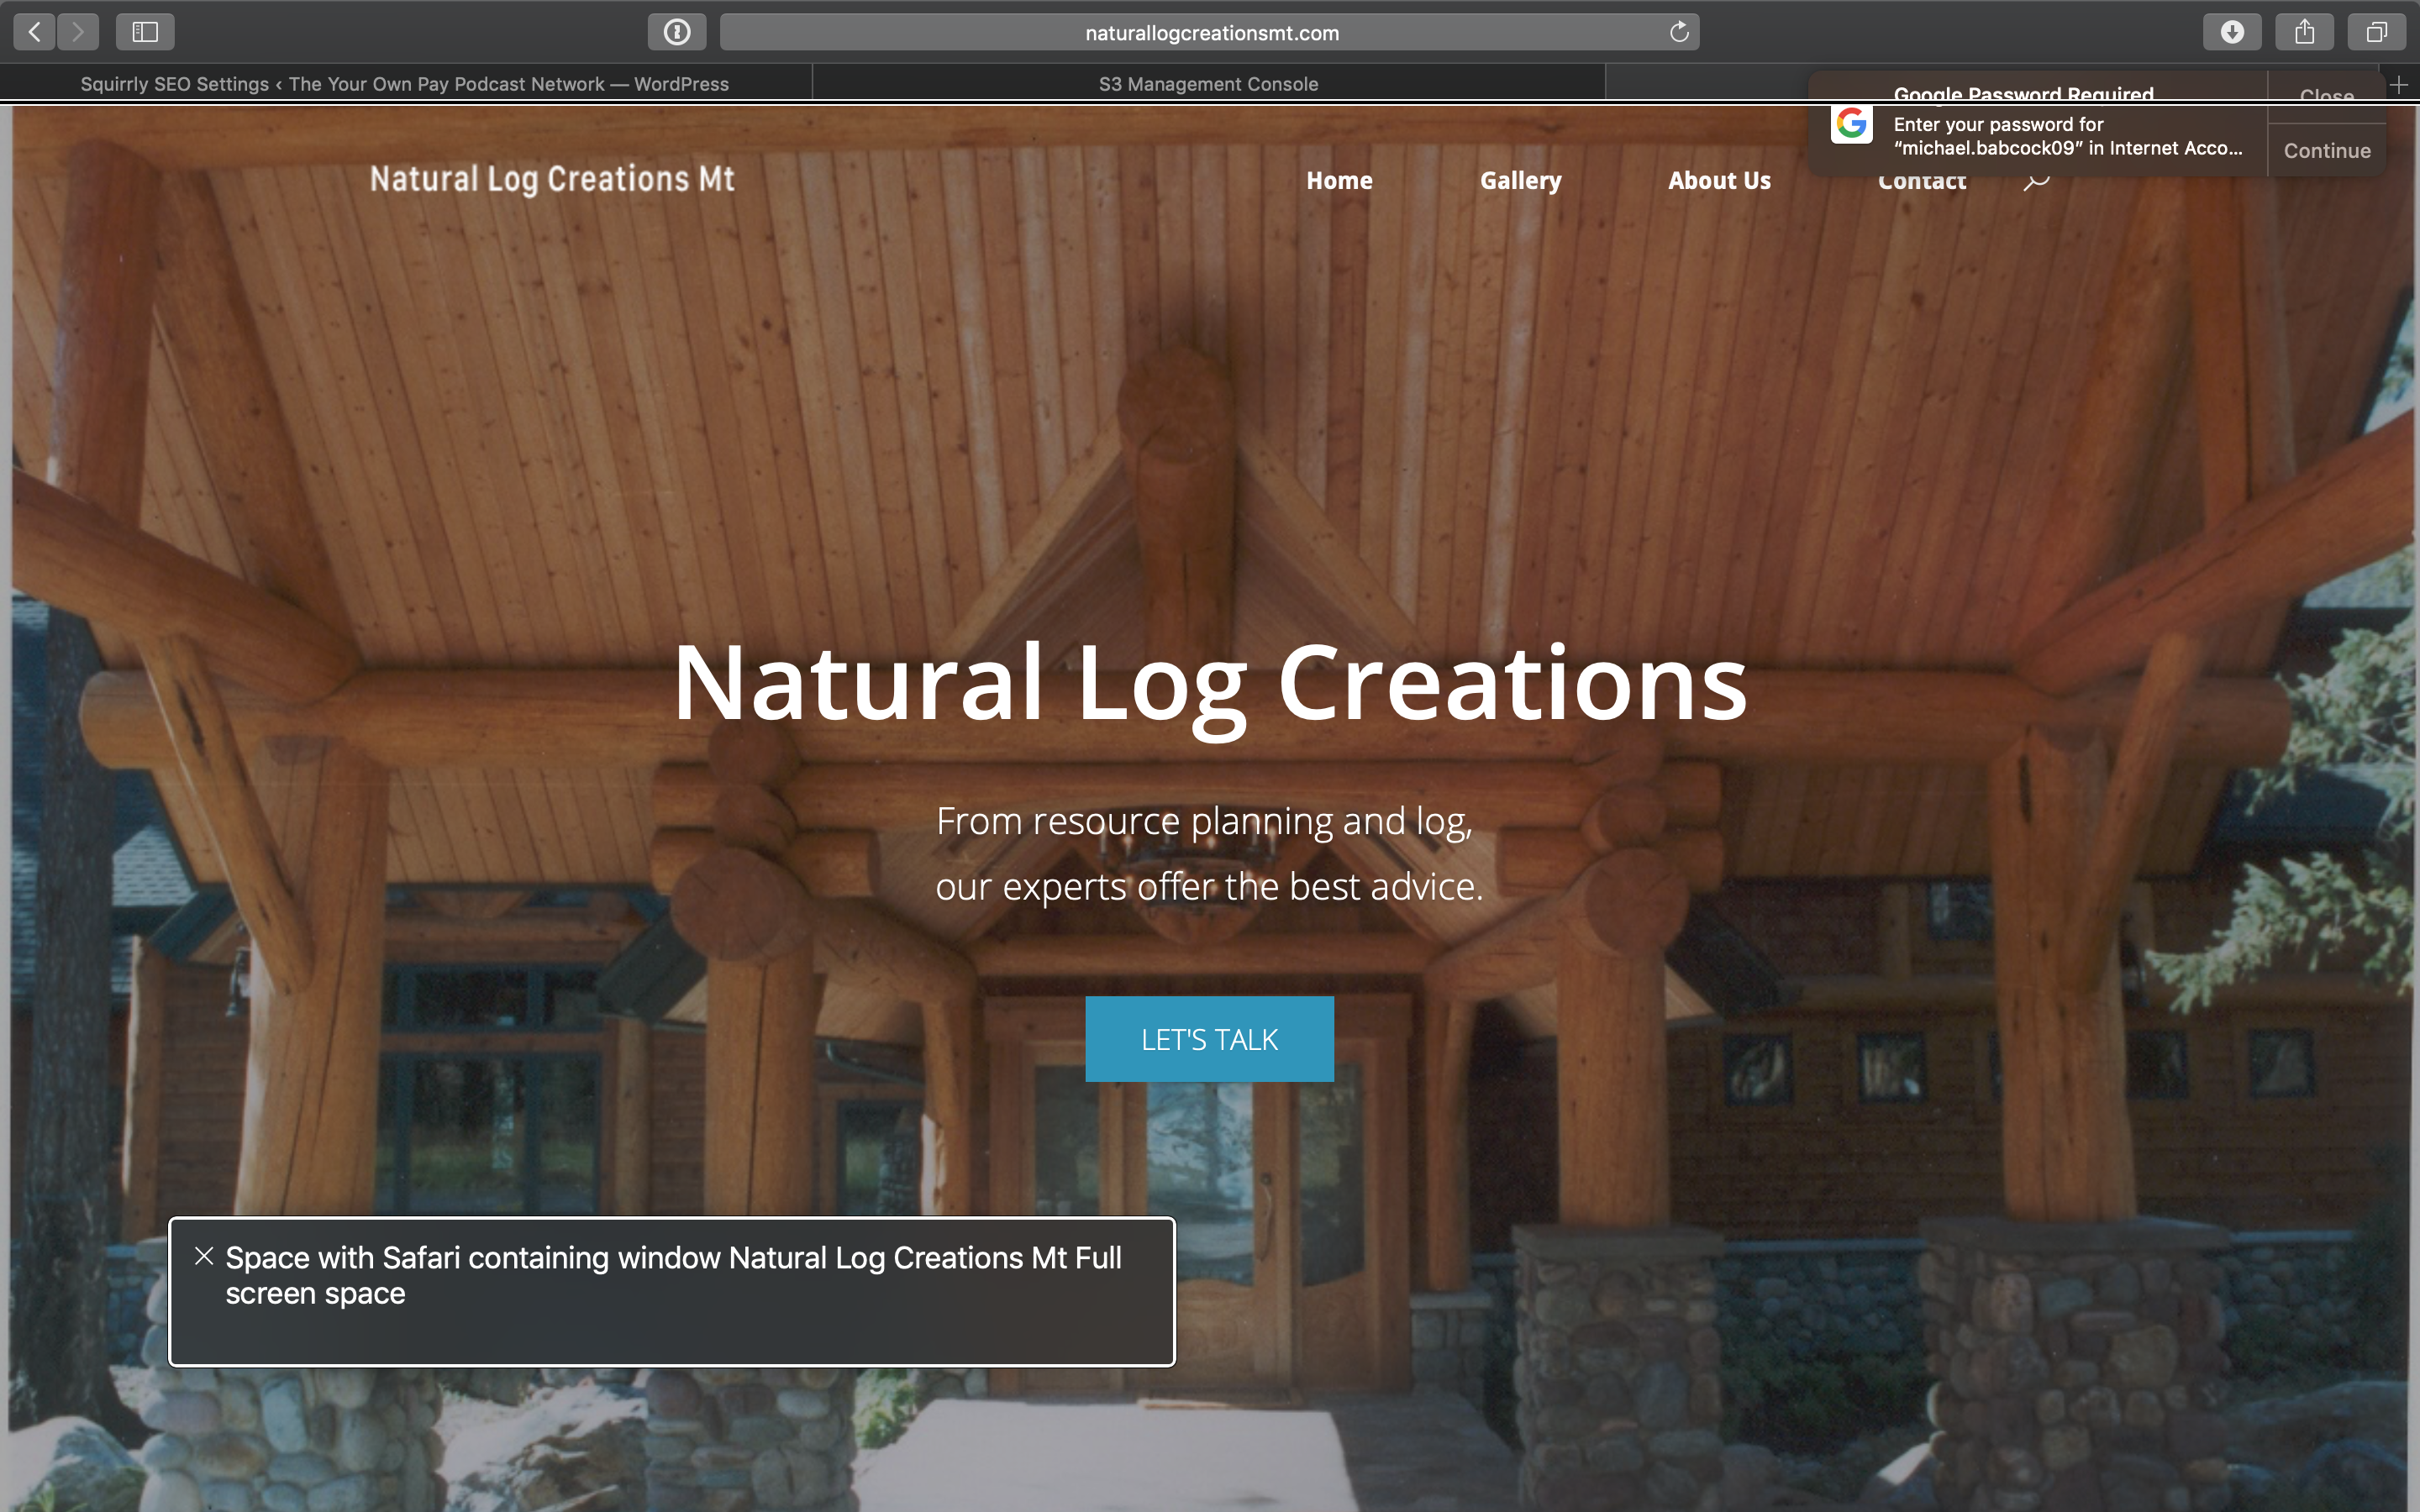 Screenshot of the homepage from Natural Log Creations Mt